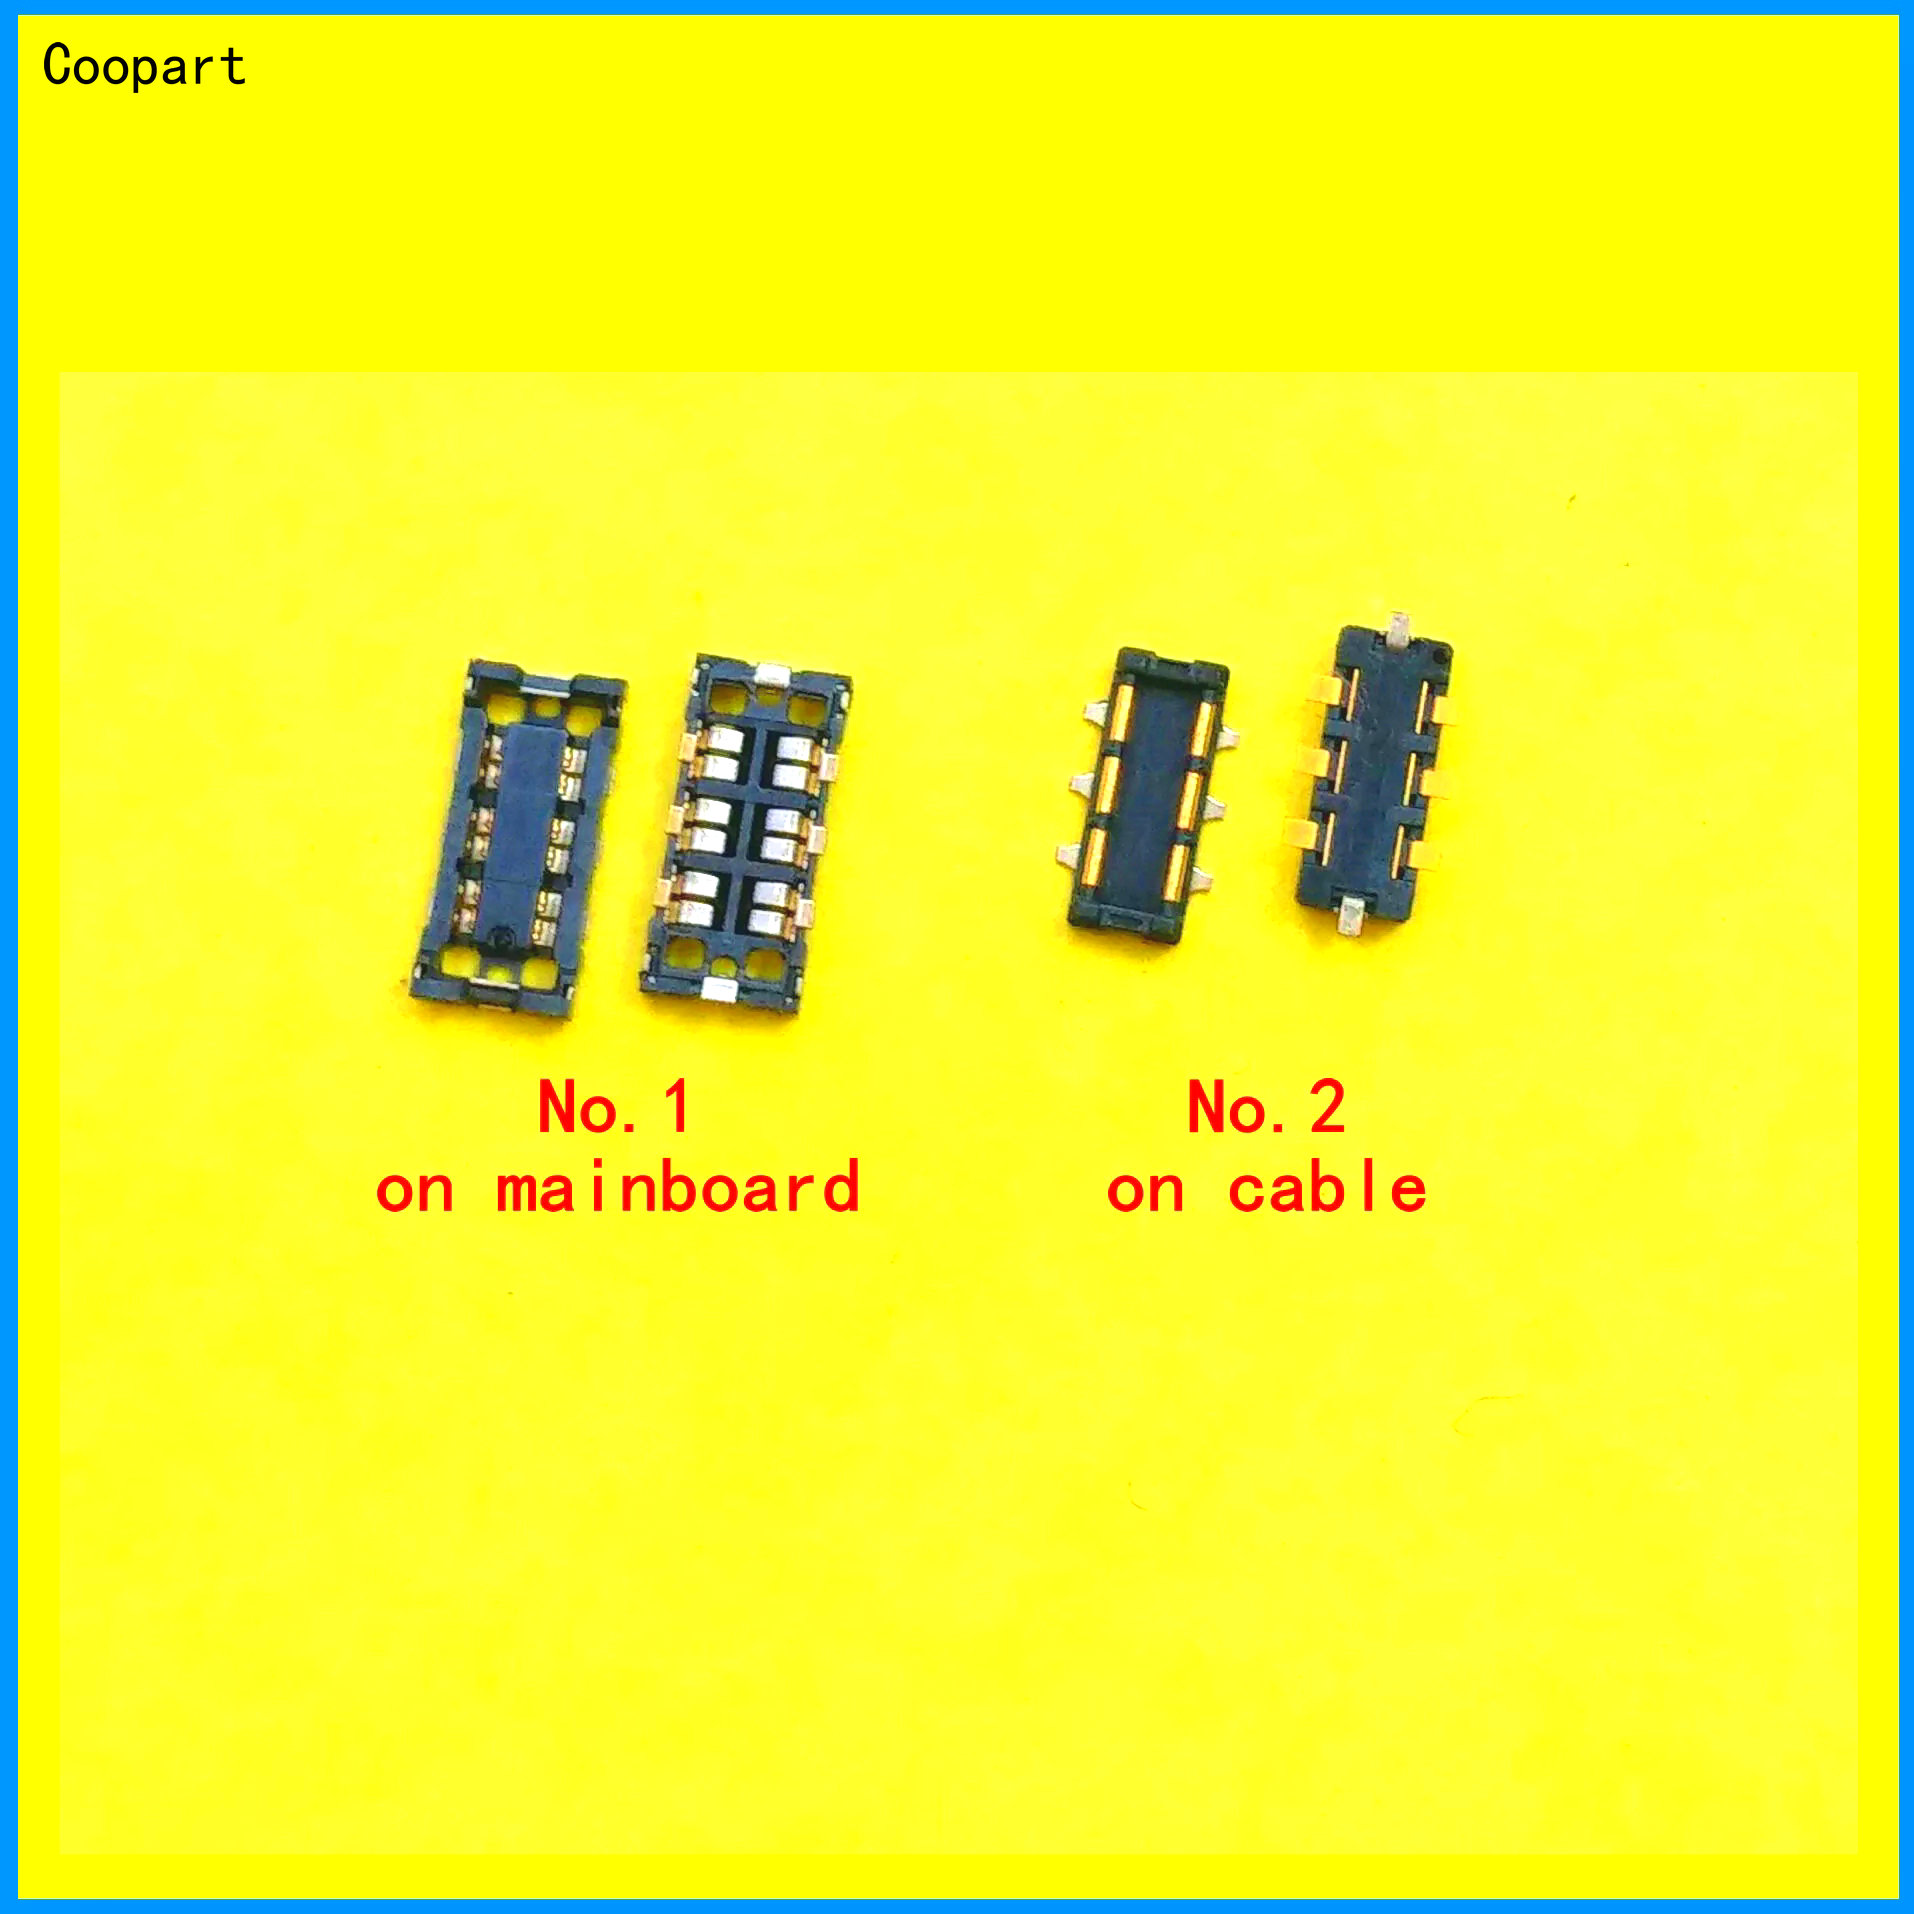 2pcs Coopart Inner Battery Connector Clip Contact Replacement For Meizu M2 Note/ M1 Note /meilan Note 2 1 Meilan 3 /Meilan Metal